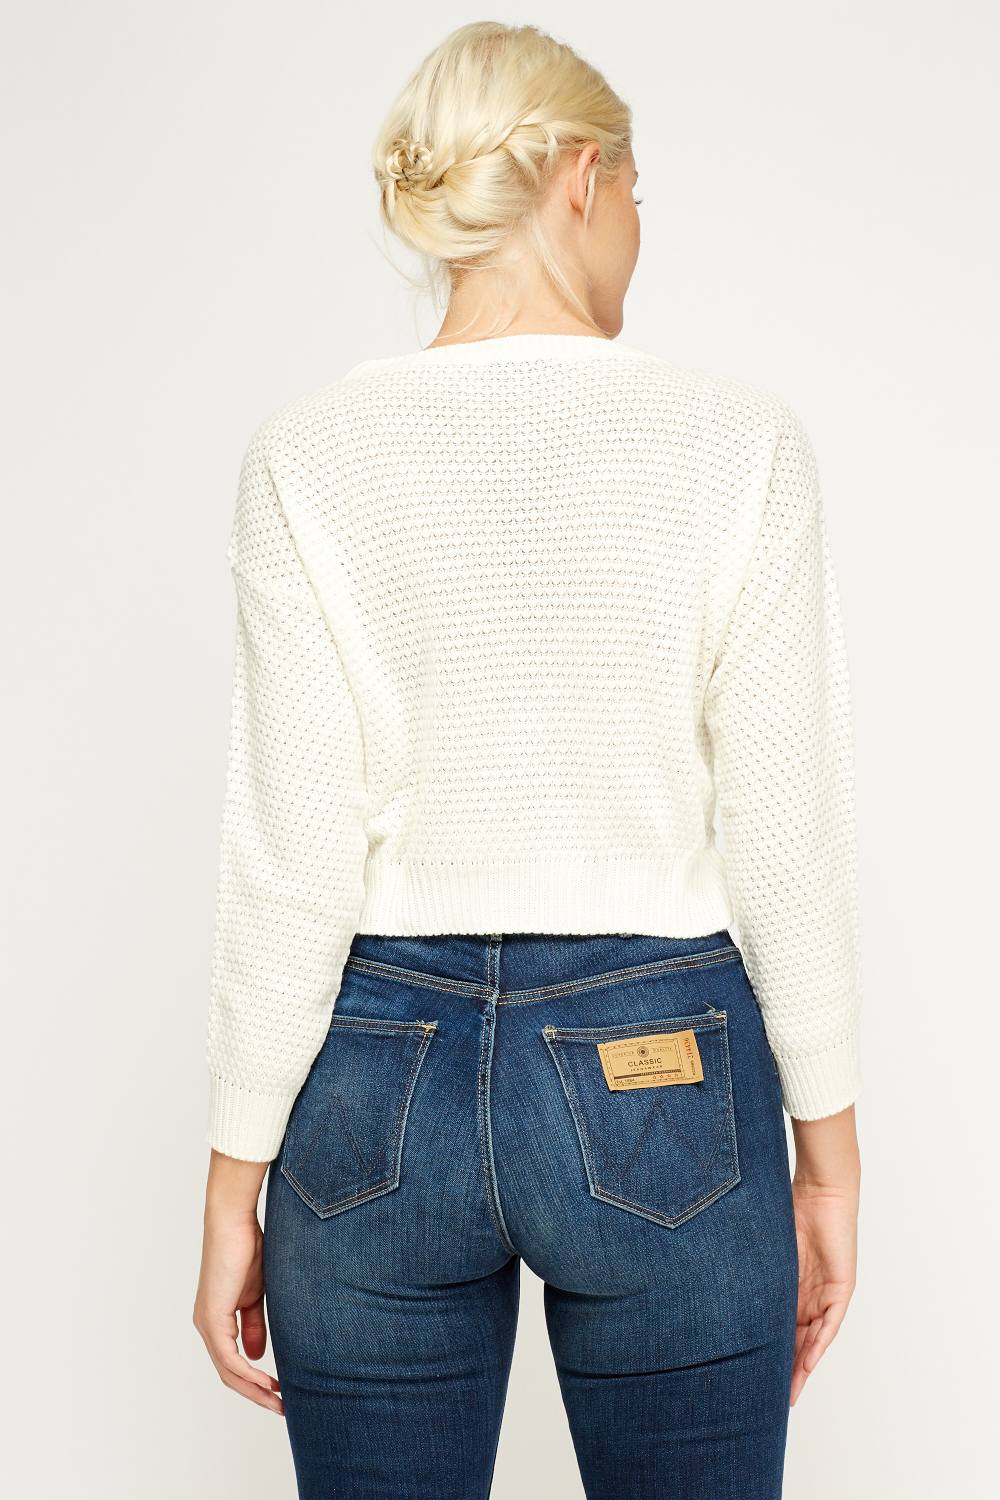 Knitting Pattern Cropped Jumper : Knitted Cropped Cream Jumper - Just ?5